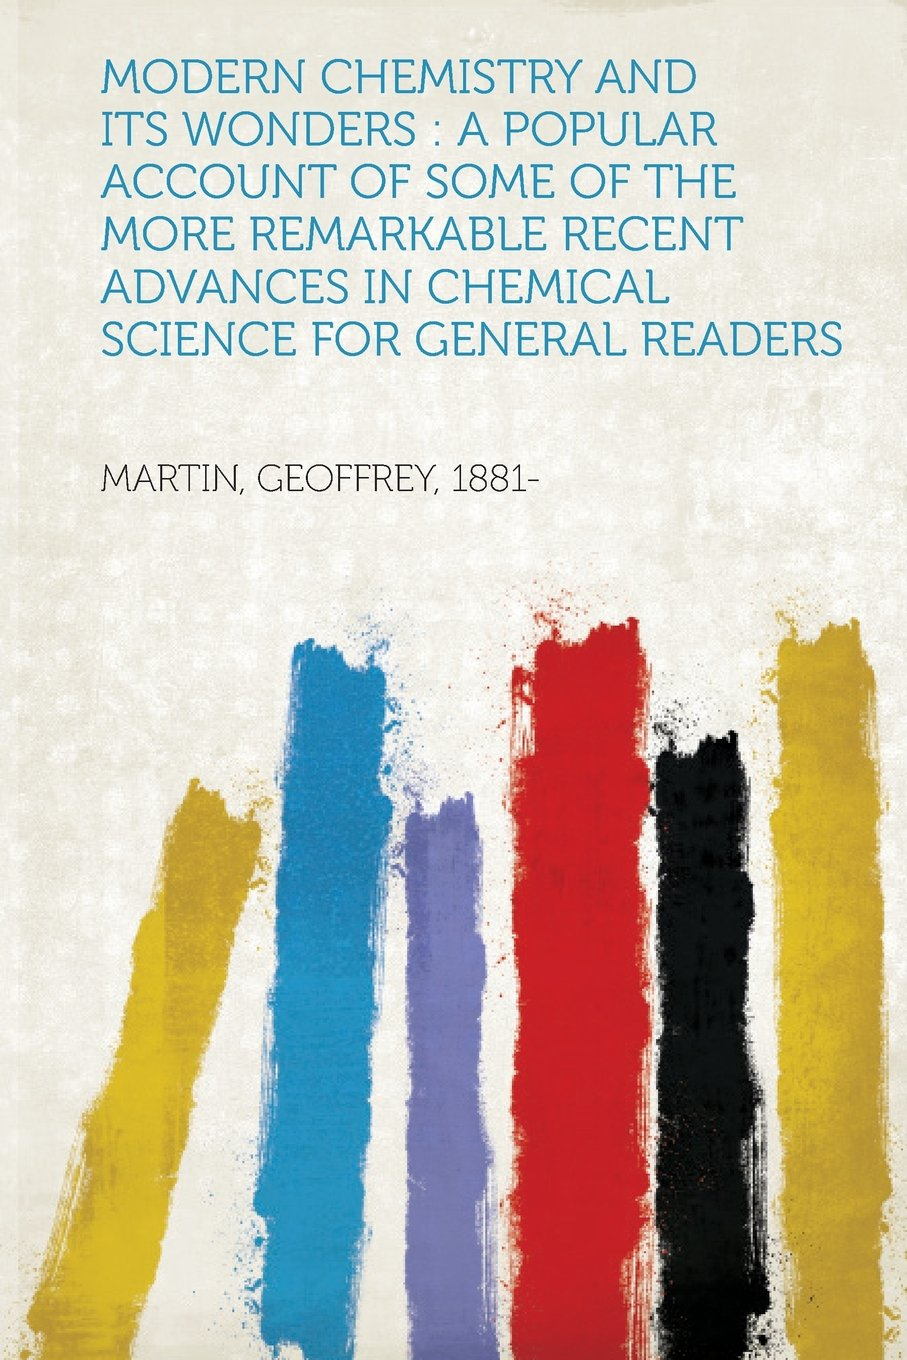 Download Modern Chemistry and Its Wonders: a Popular Account of Some of the More Remarkable Recent Advances in Chemical Science for General Readers pdf epub